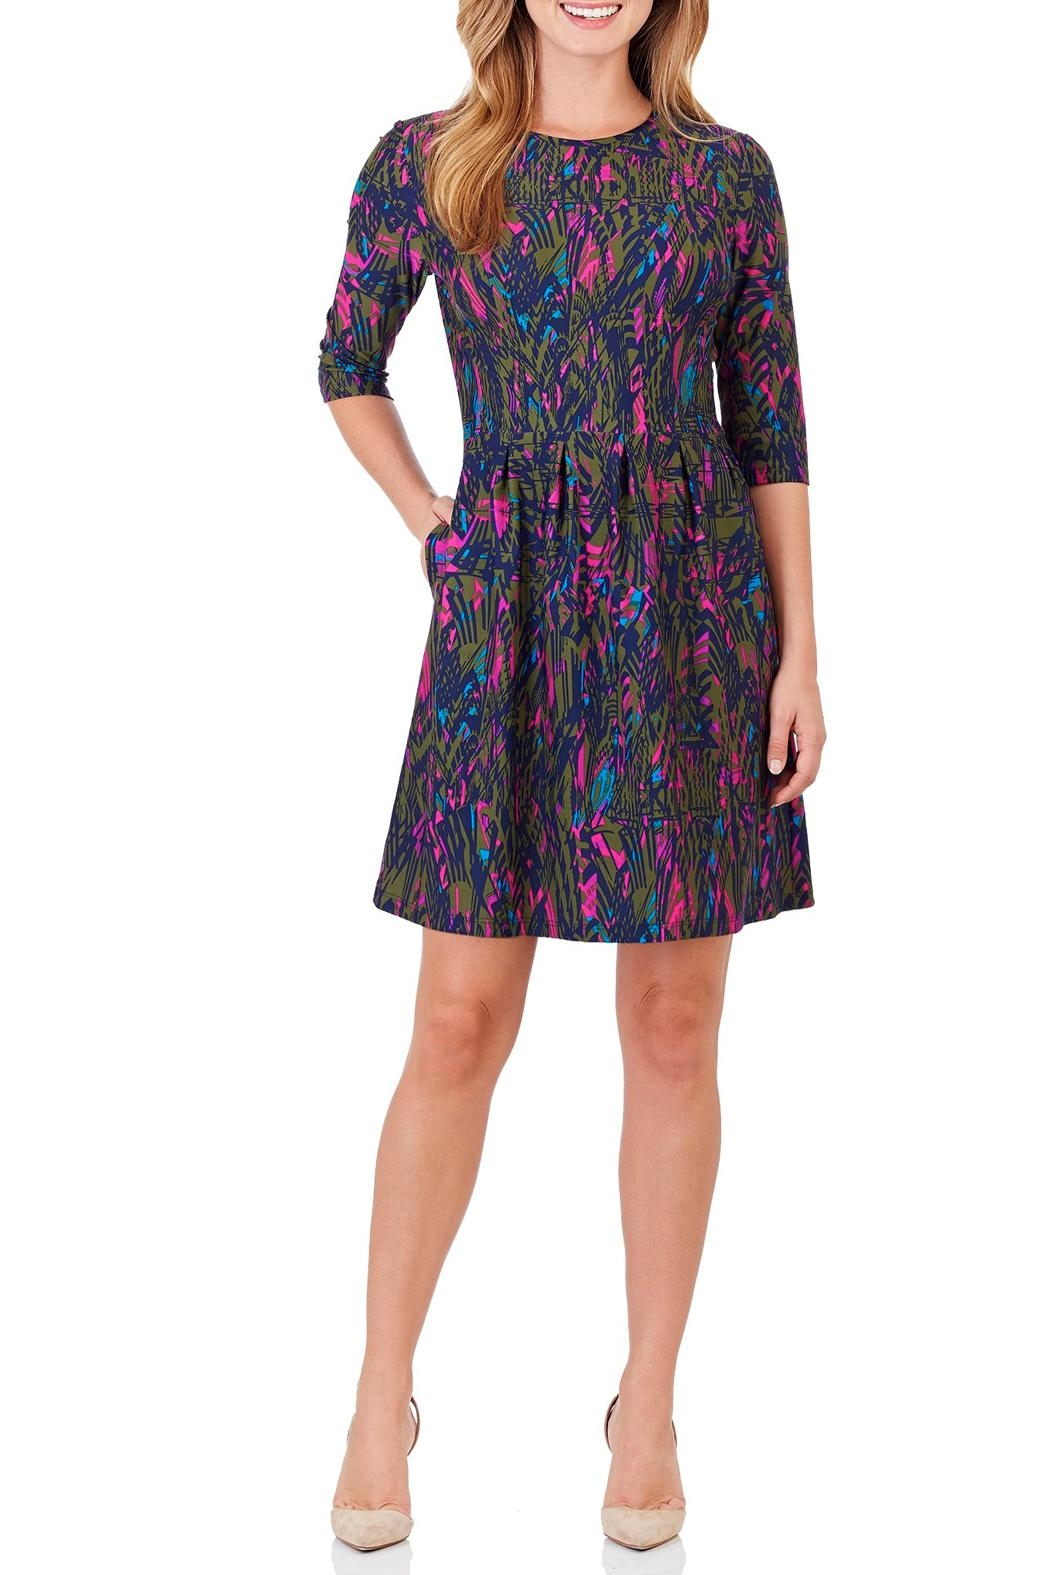 Jude Connally Brynn Fit & Flare Dress - Main Image